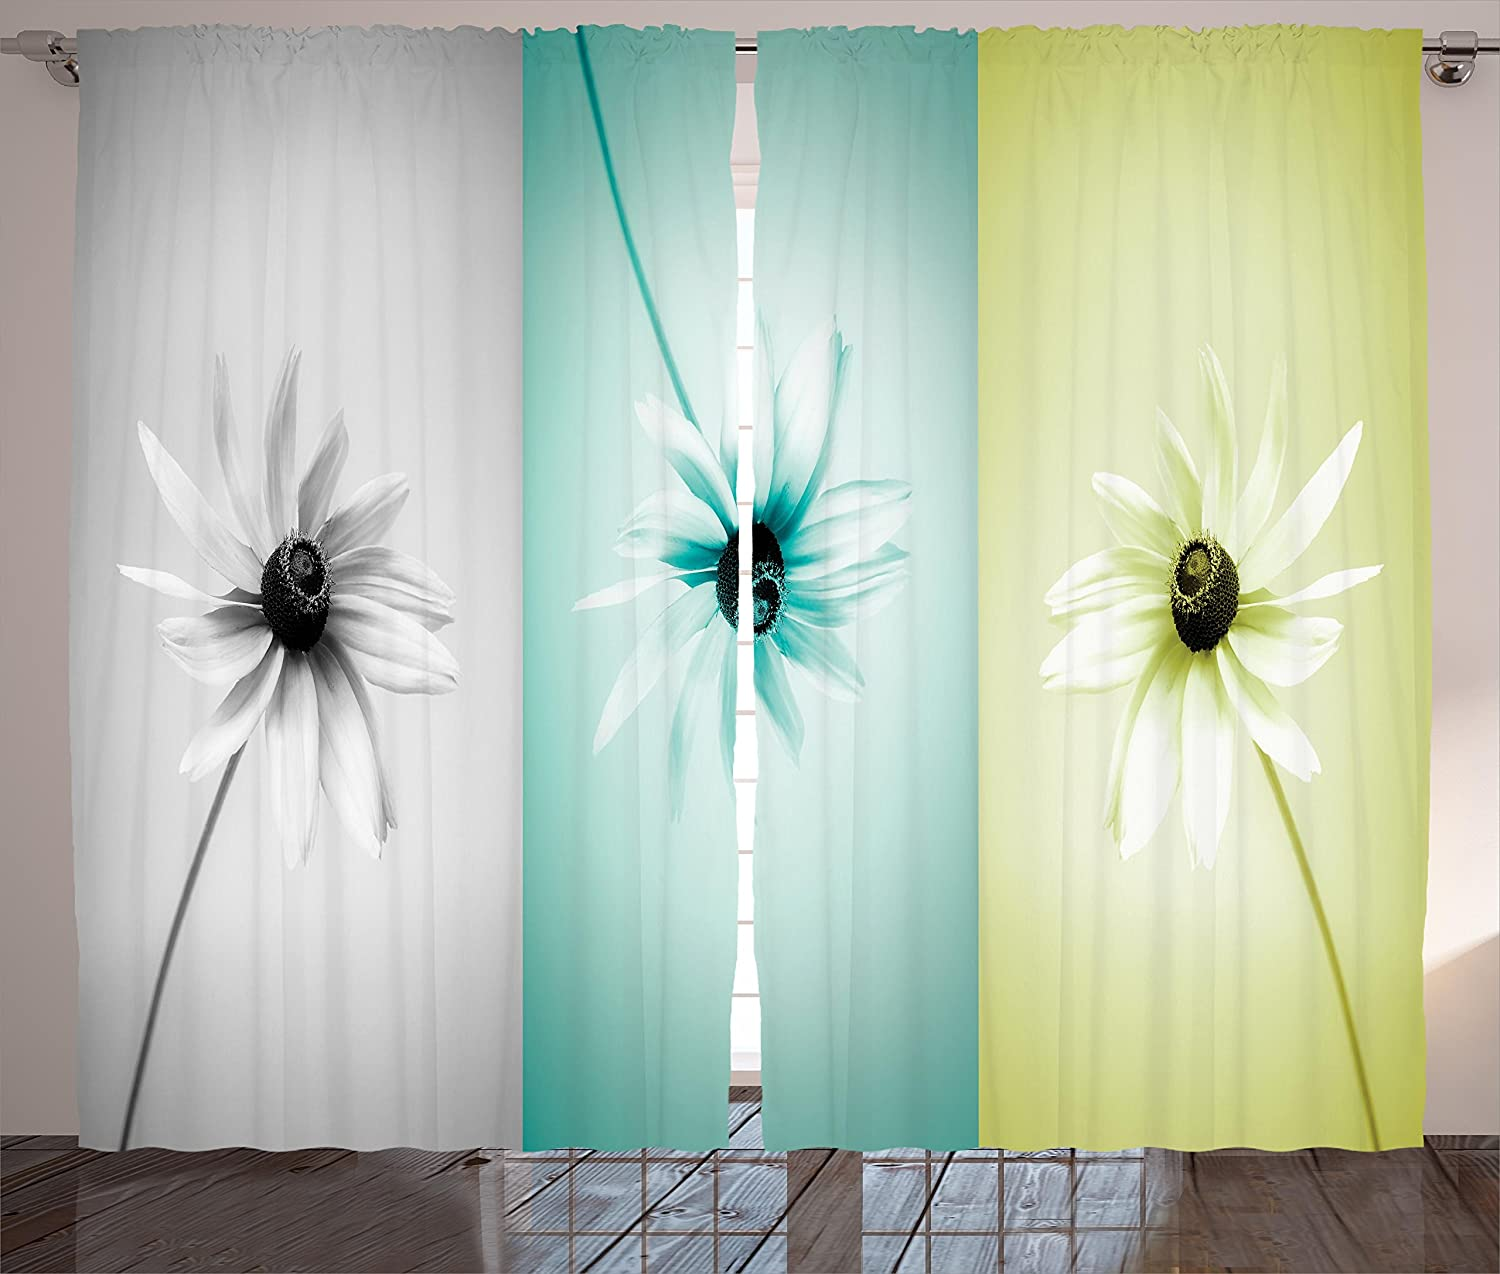 """Ambesonne Abstract Curtains, Daisy Flowers in Different Featured Framed Saturated Image, Living Room Bedroom Window Drapes 2 Panel Set, 108"""" X 90"""", Turquoise Grey"""